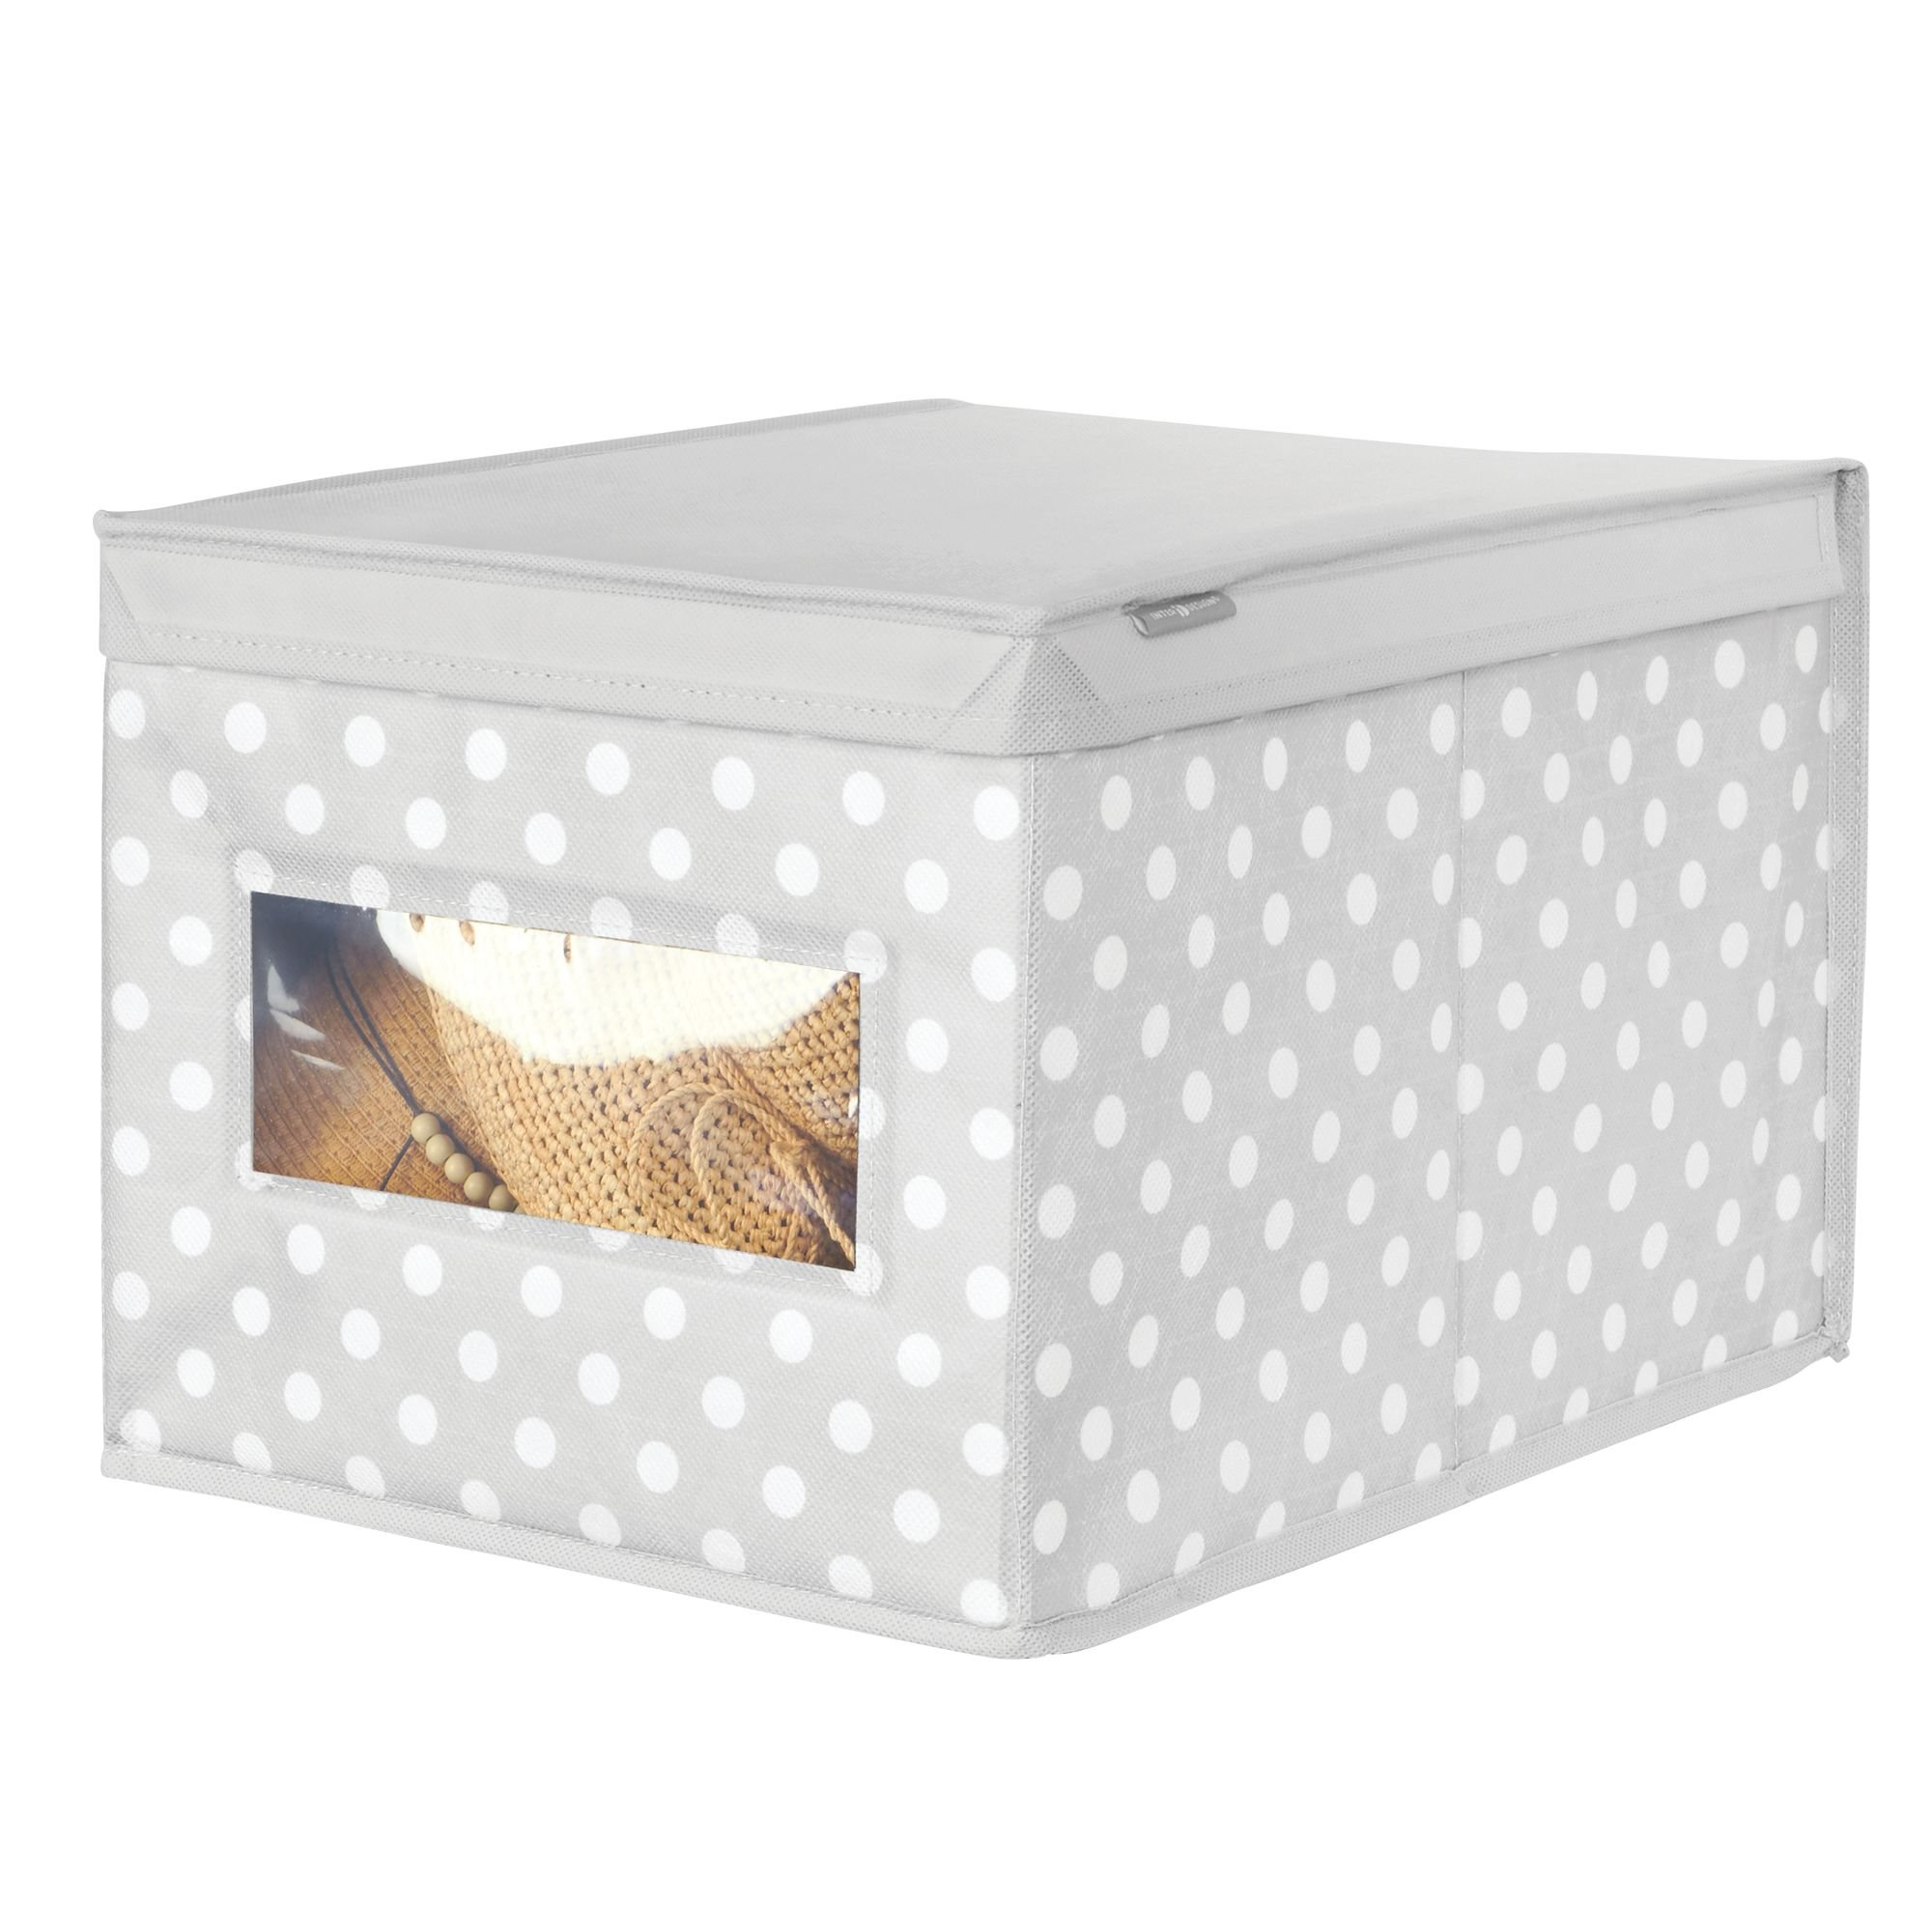 mDesign Soft Stackable Fabric Closet Storage Organizer Holder Box - Clear Window, Attached Hinged Lid, for Child/Kids Room, Nursery - Polka Dot Pattern - Large, Pack of 2, Light Gray with White Dots by mDesign (Image #5)